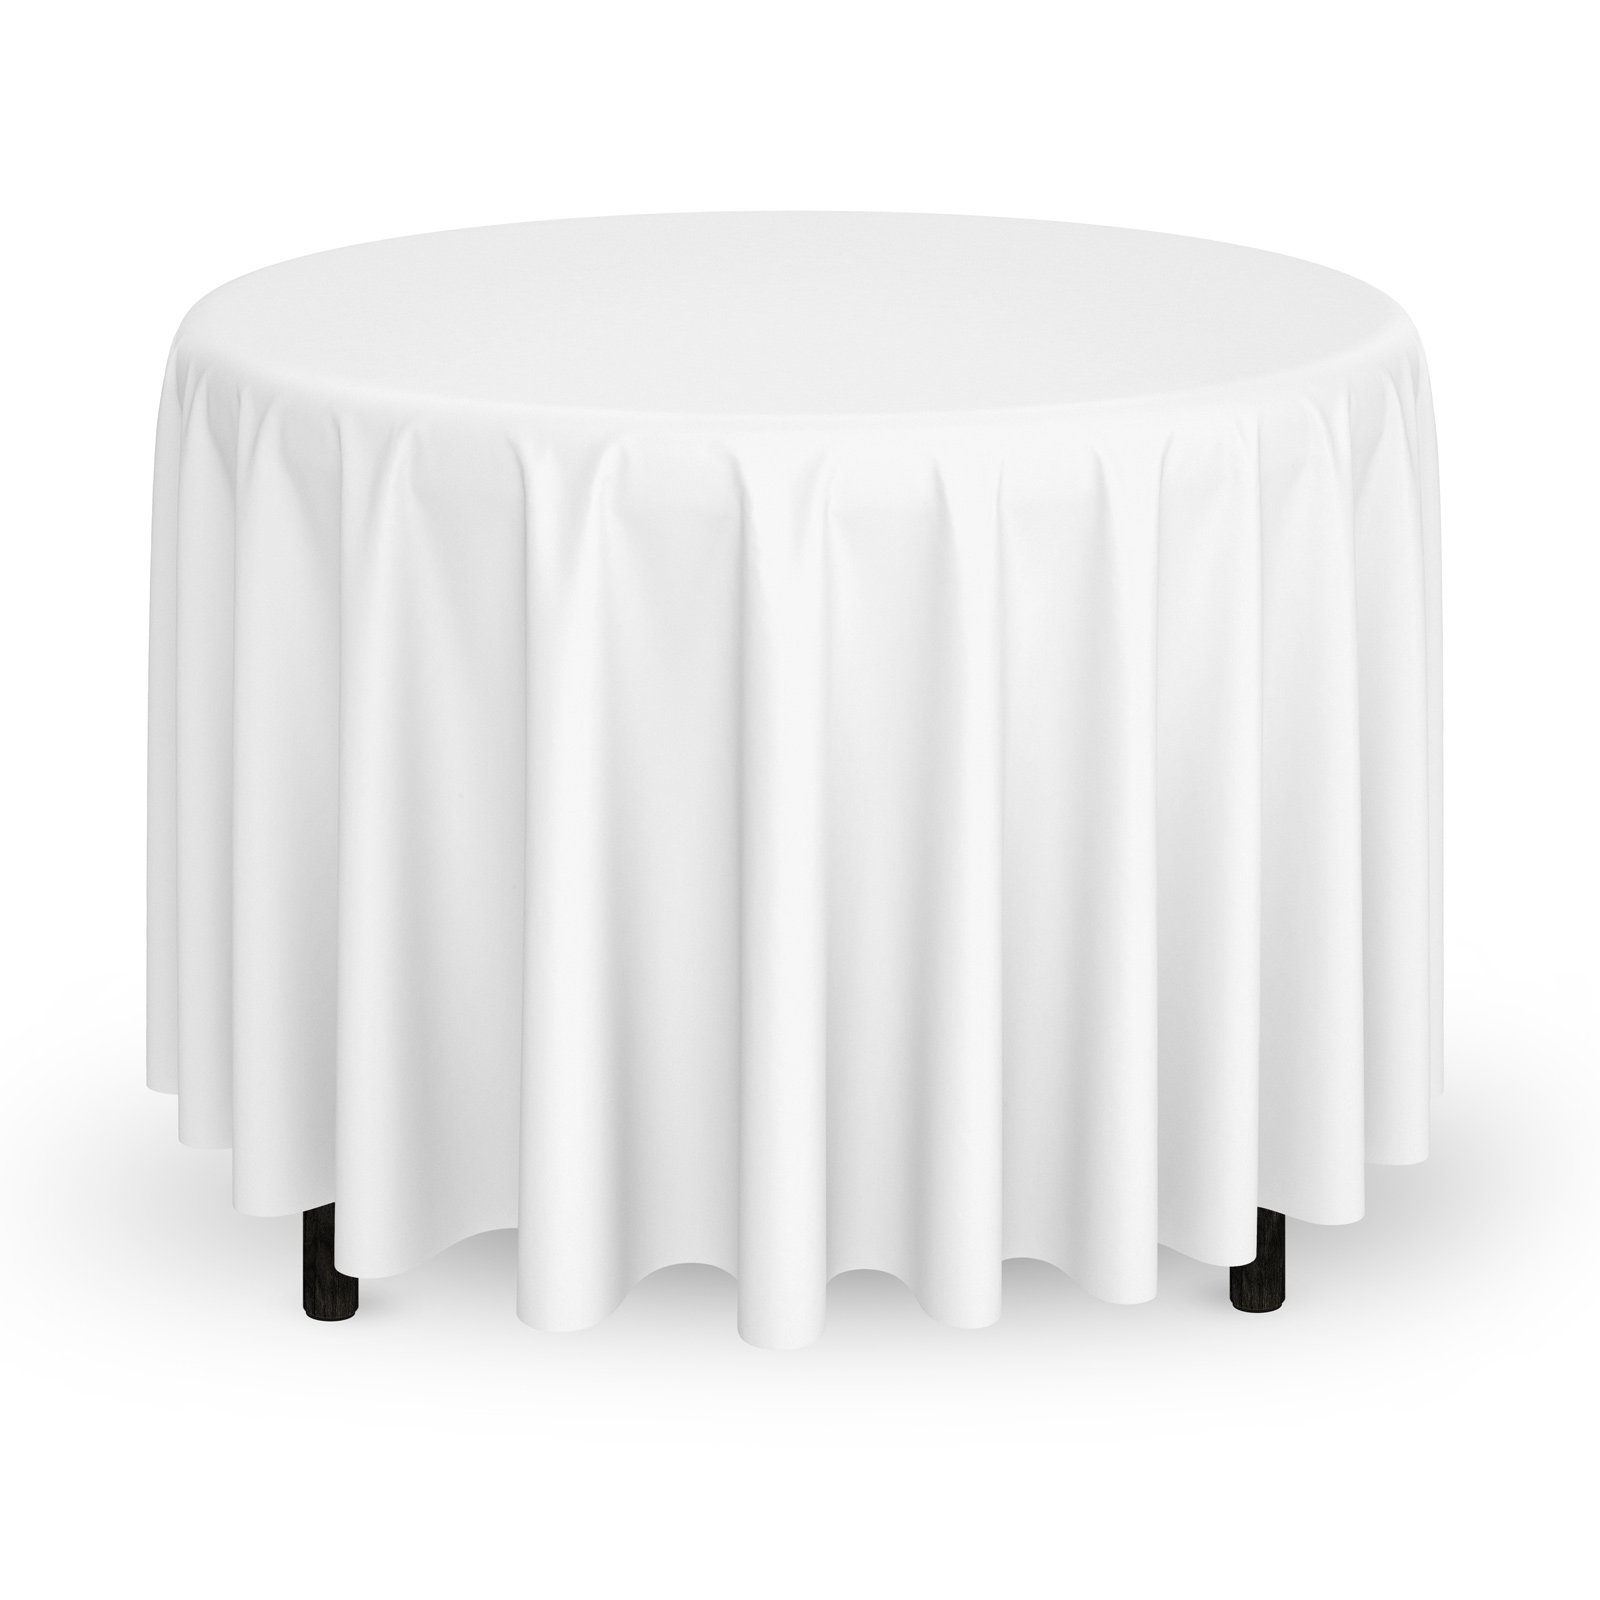 Mill & Thread - 10 Premium 108'' Round Tablecloths for Wedding/Banquet/Restaurant - Polyester Fabric Table Cloths - White